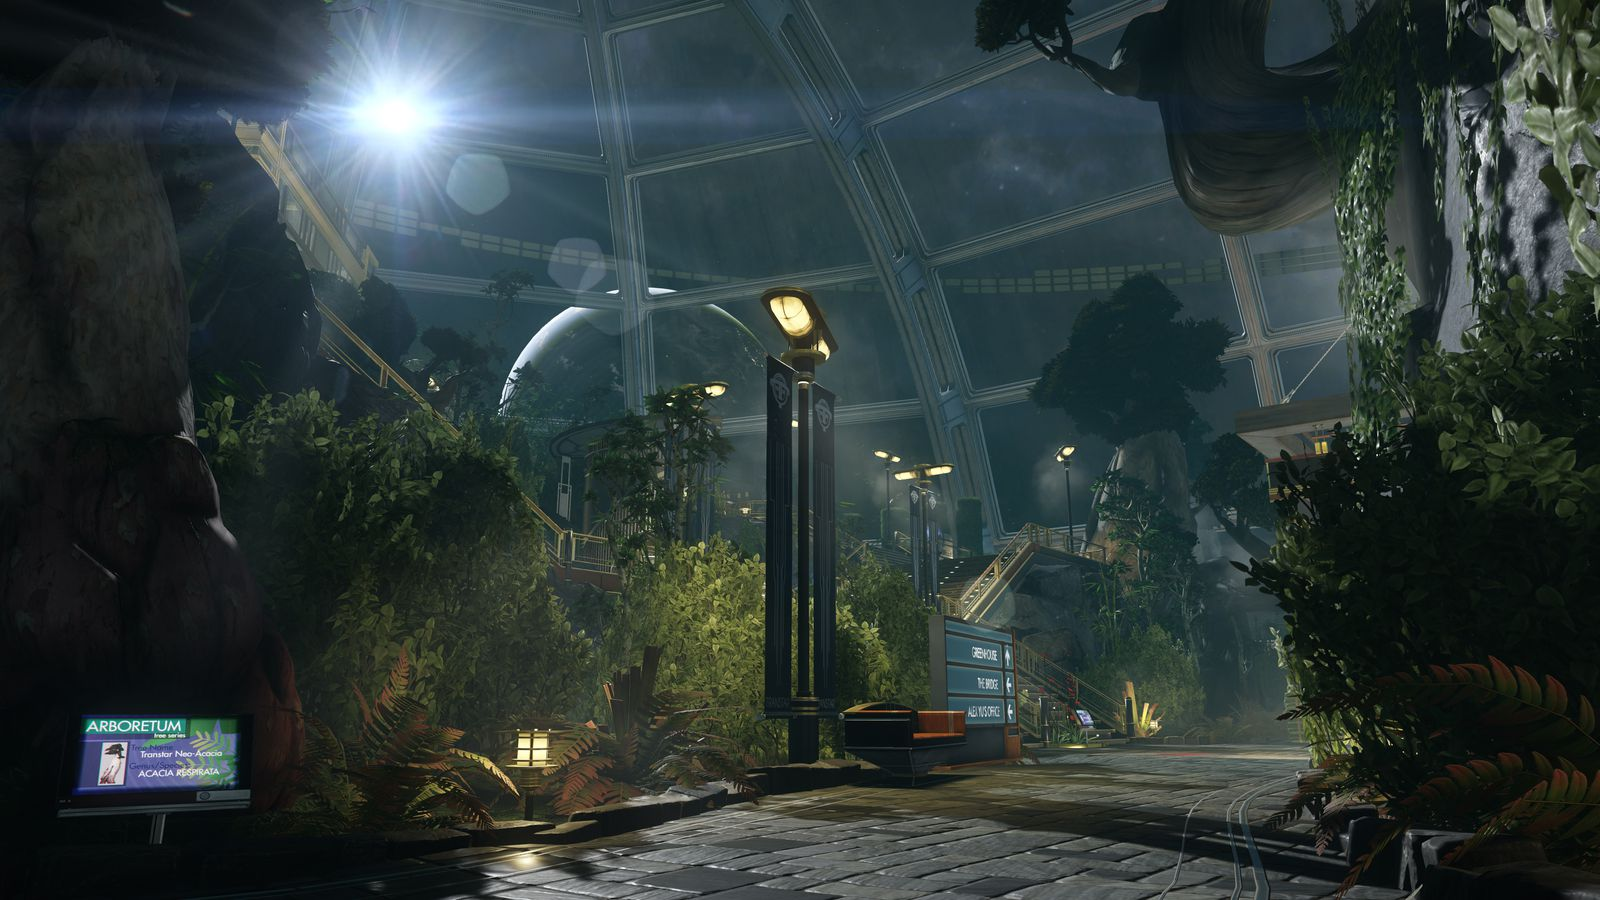 Prey demo now available on PS4 and Xbox One, but not PC (update)